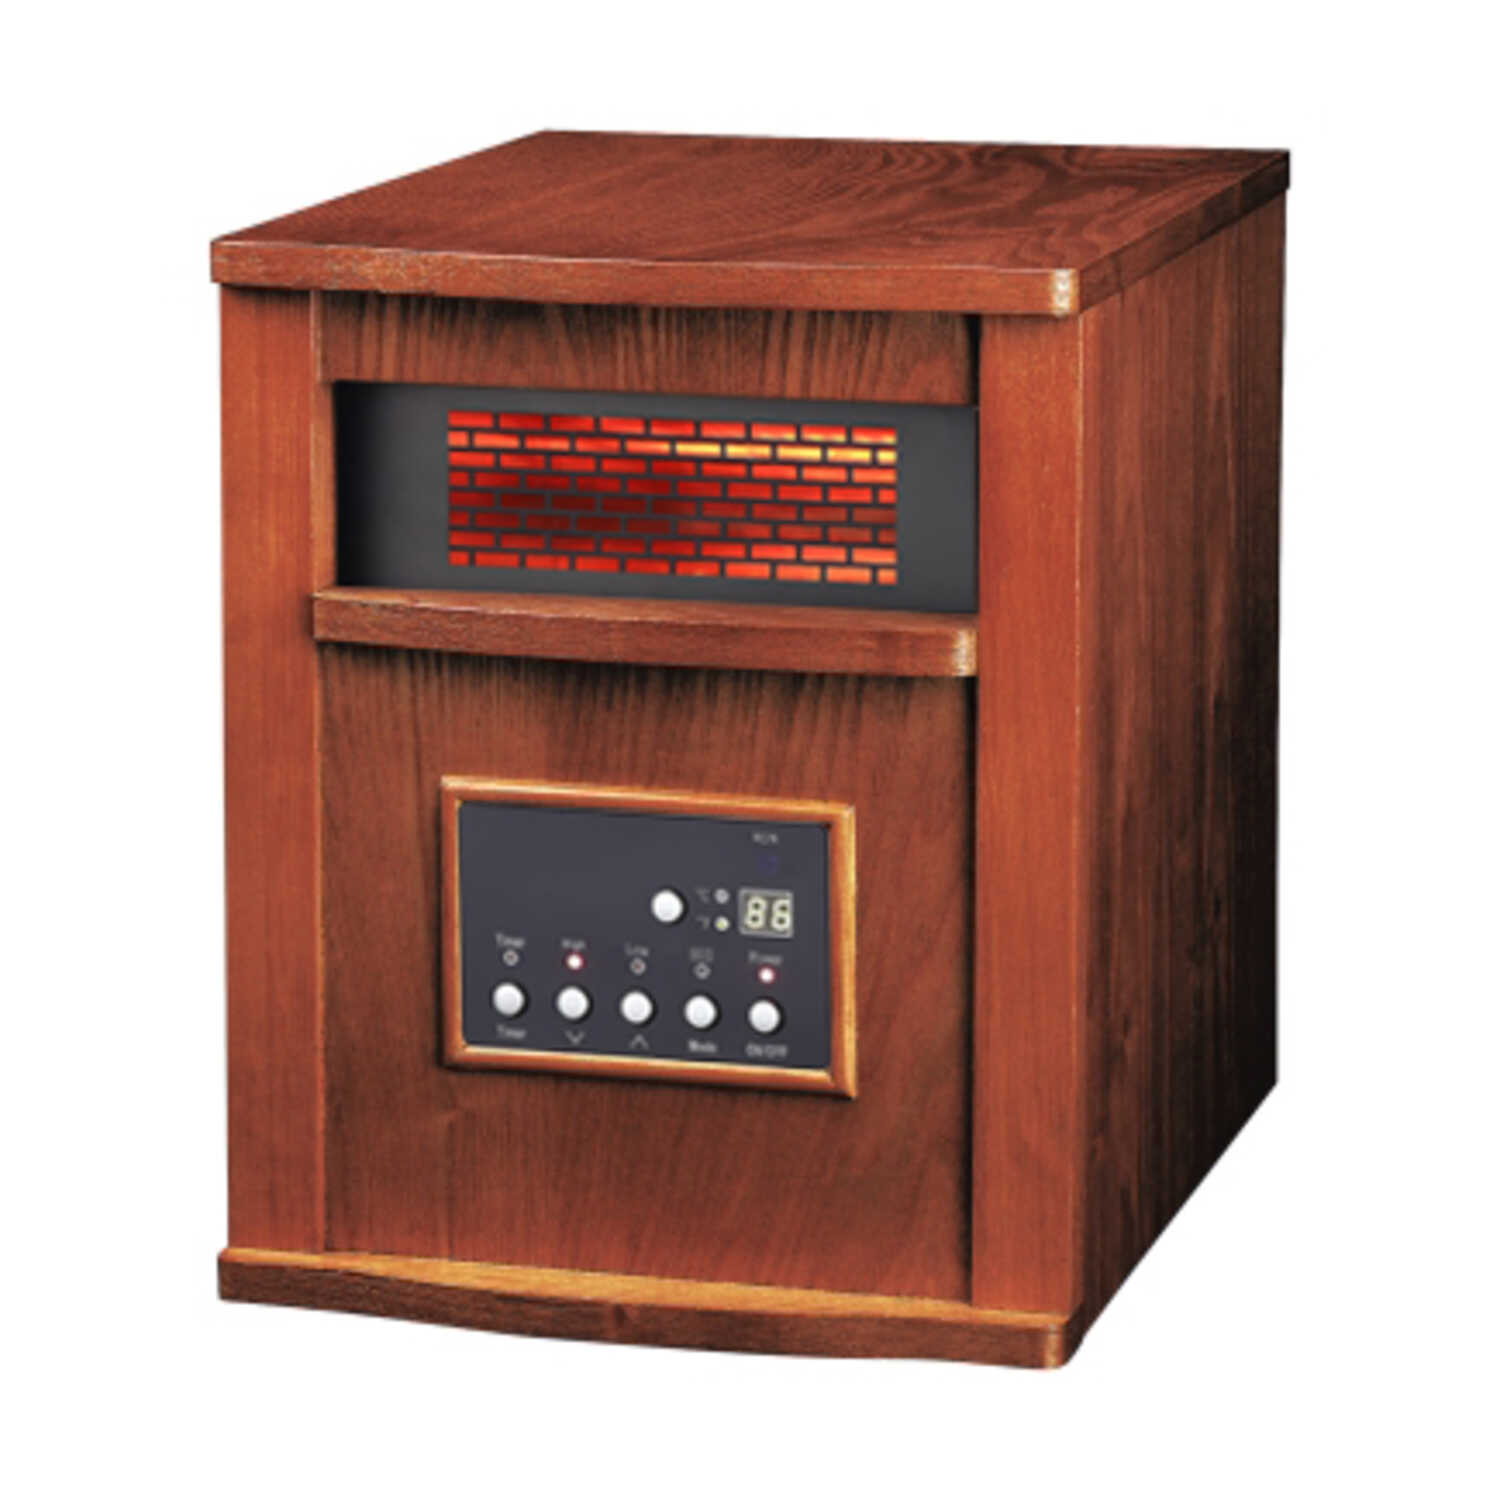 Konwin  250 sq. ft. Electric  Infrared  Heater